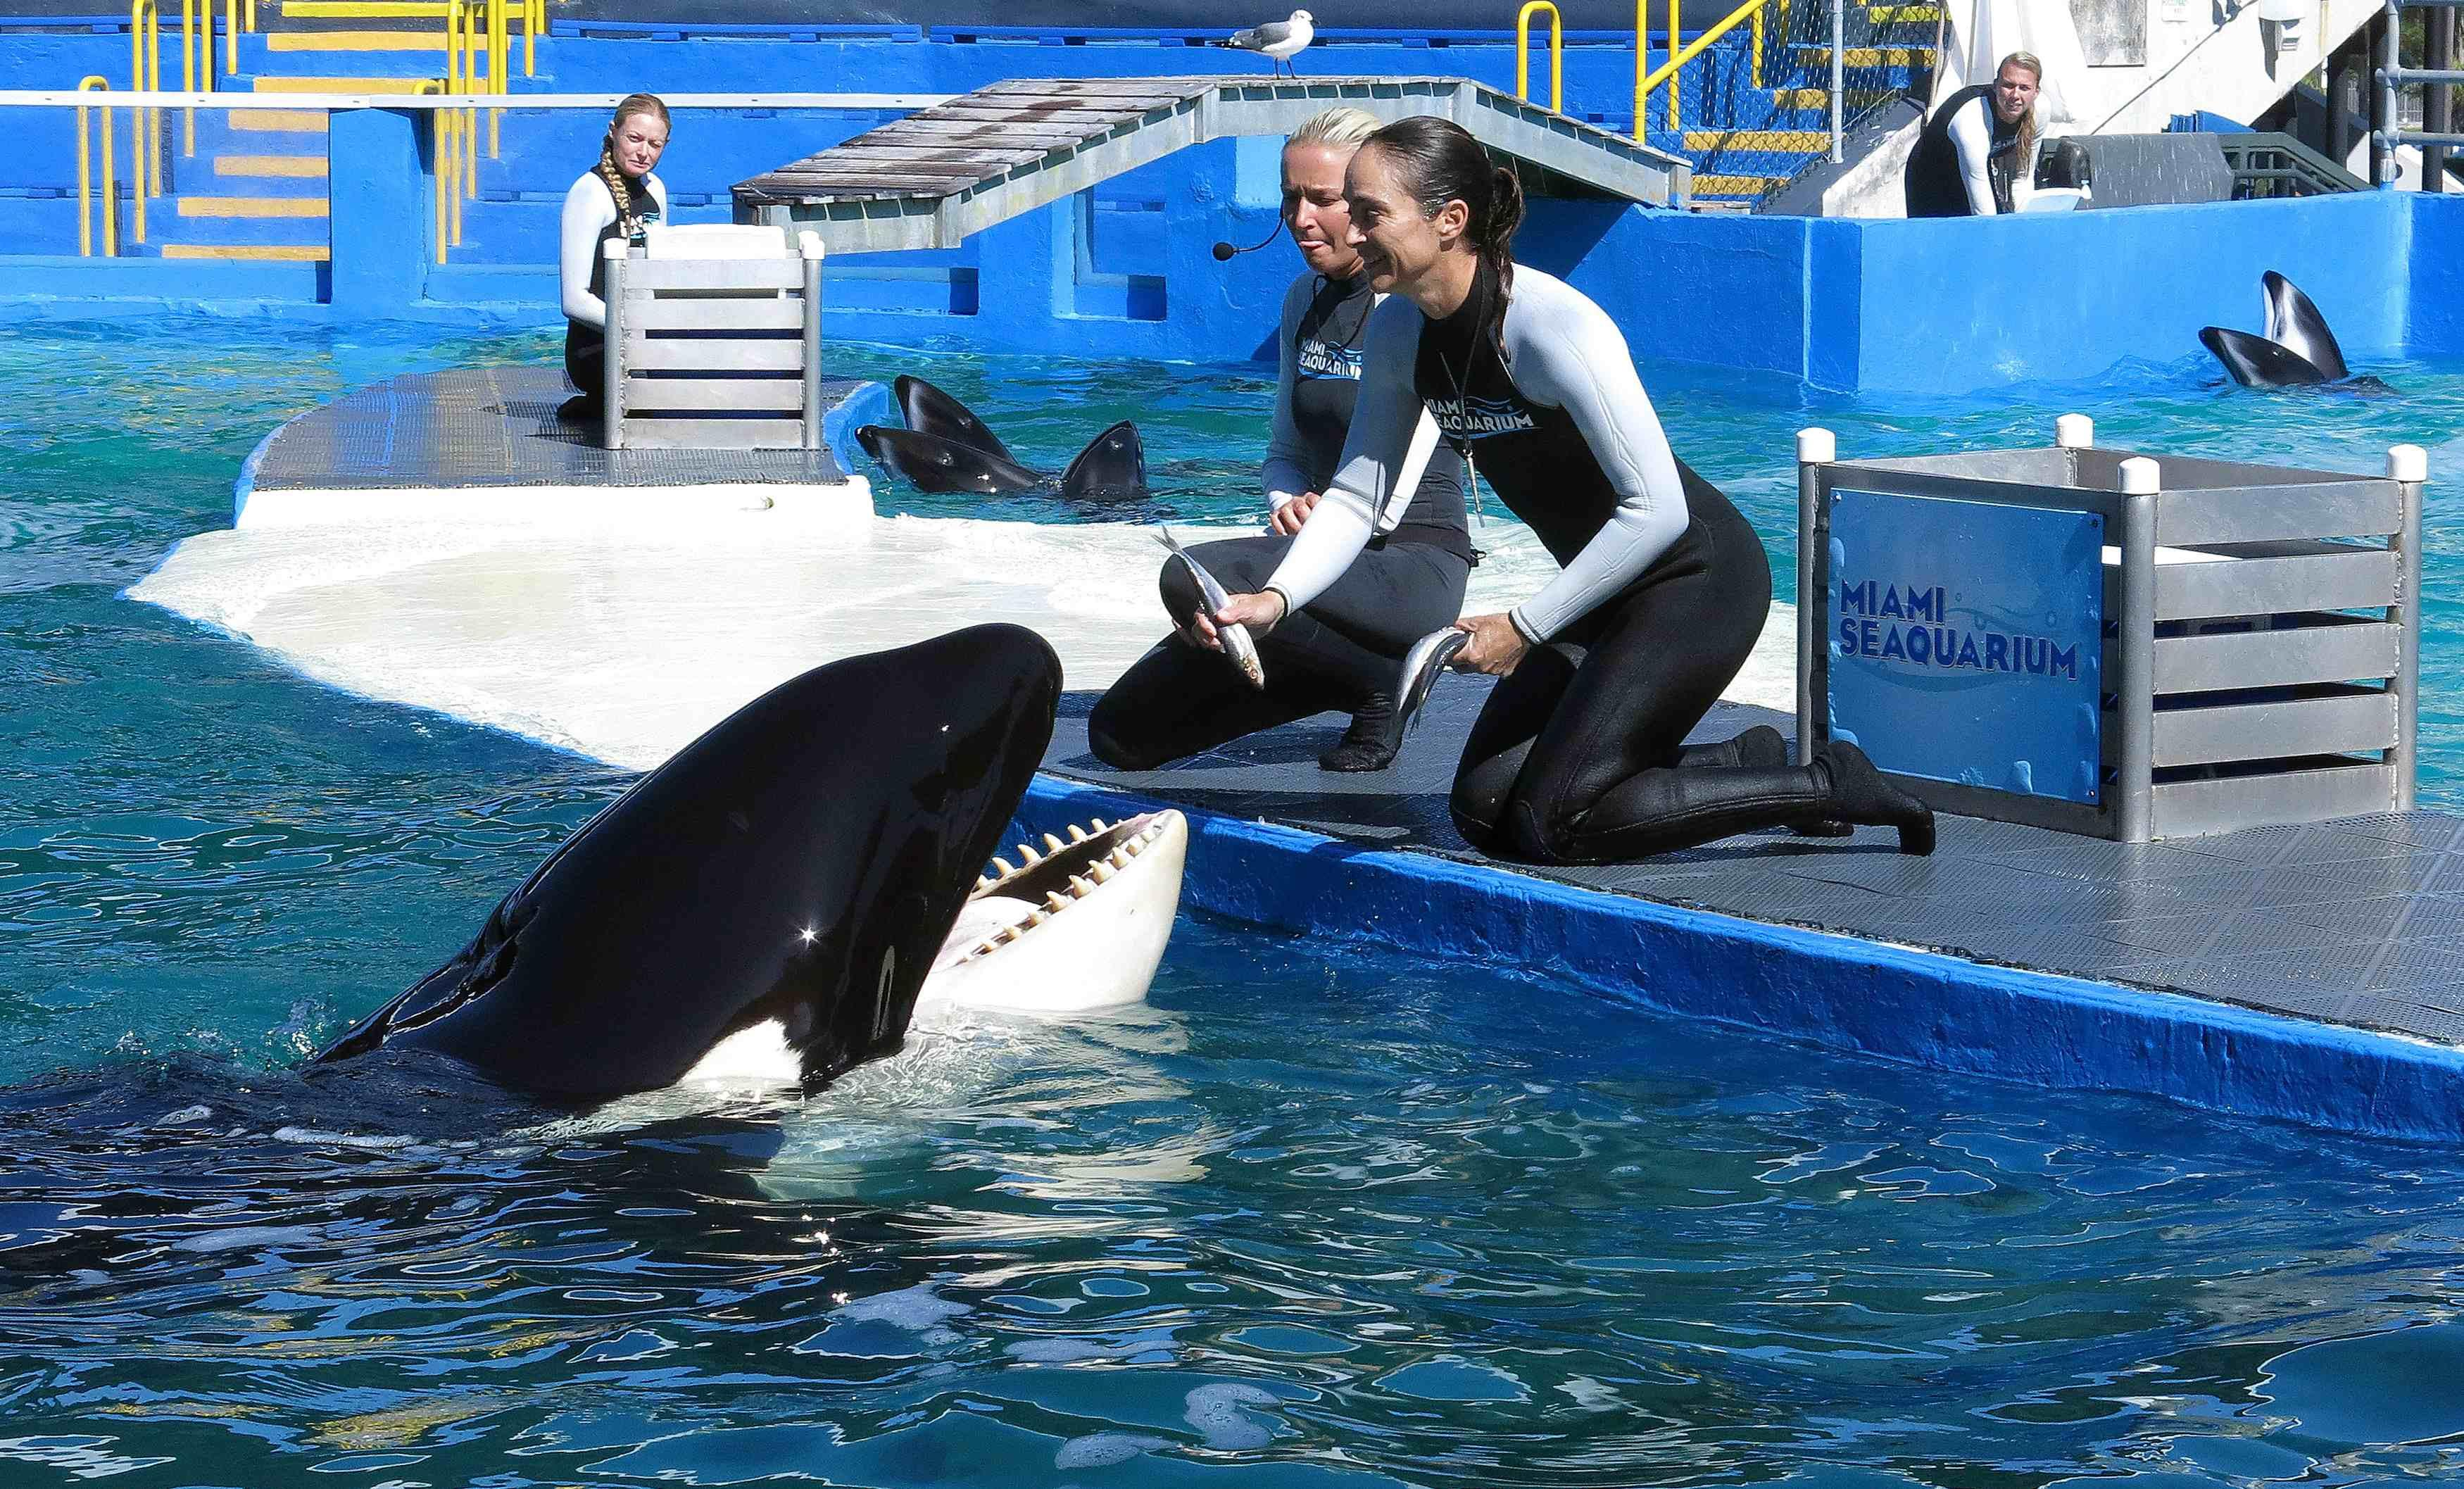 killer whale captivity Long-distance communication, naturalistic soundscapes and the encouragement of pod behavior could make life in captivity better for orcas.